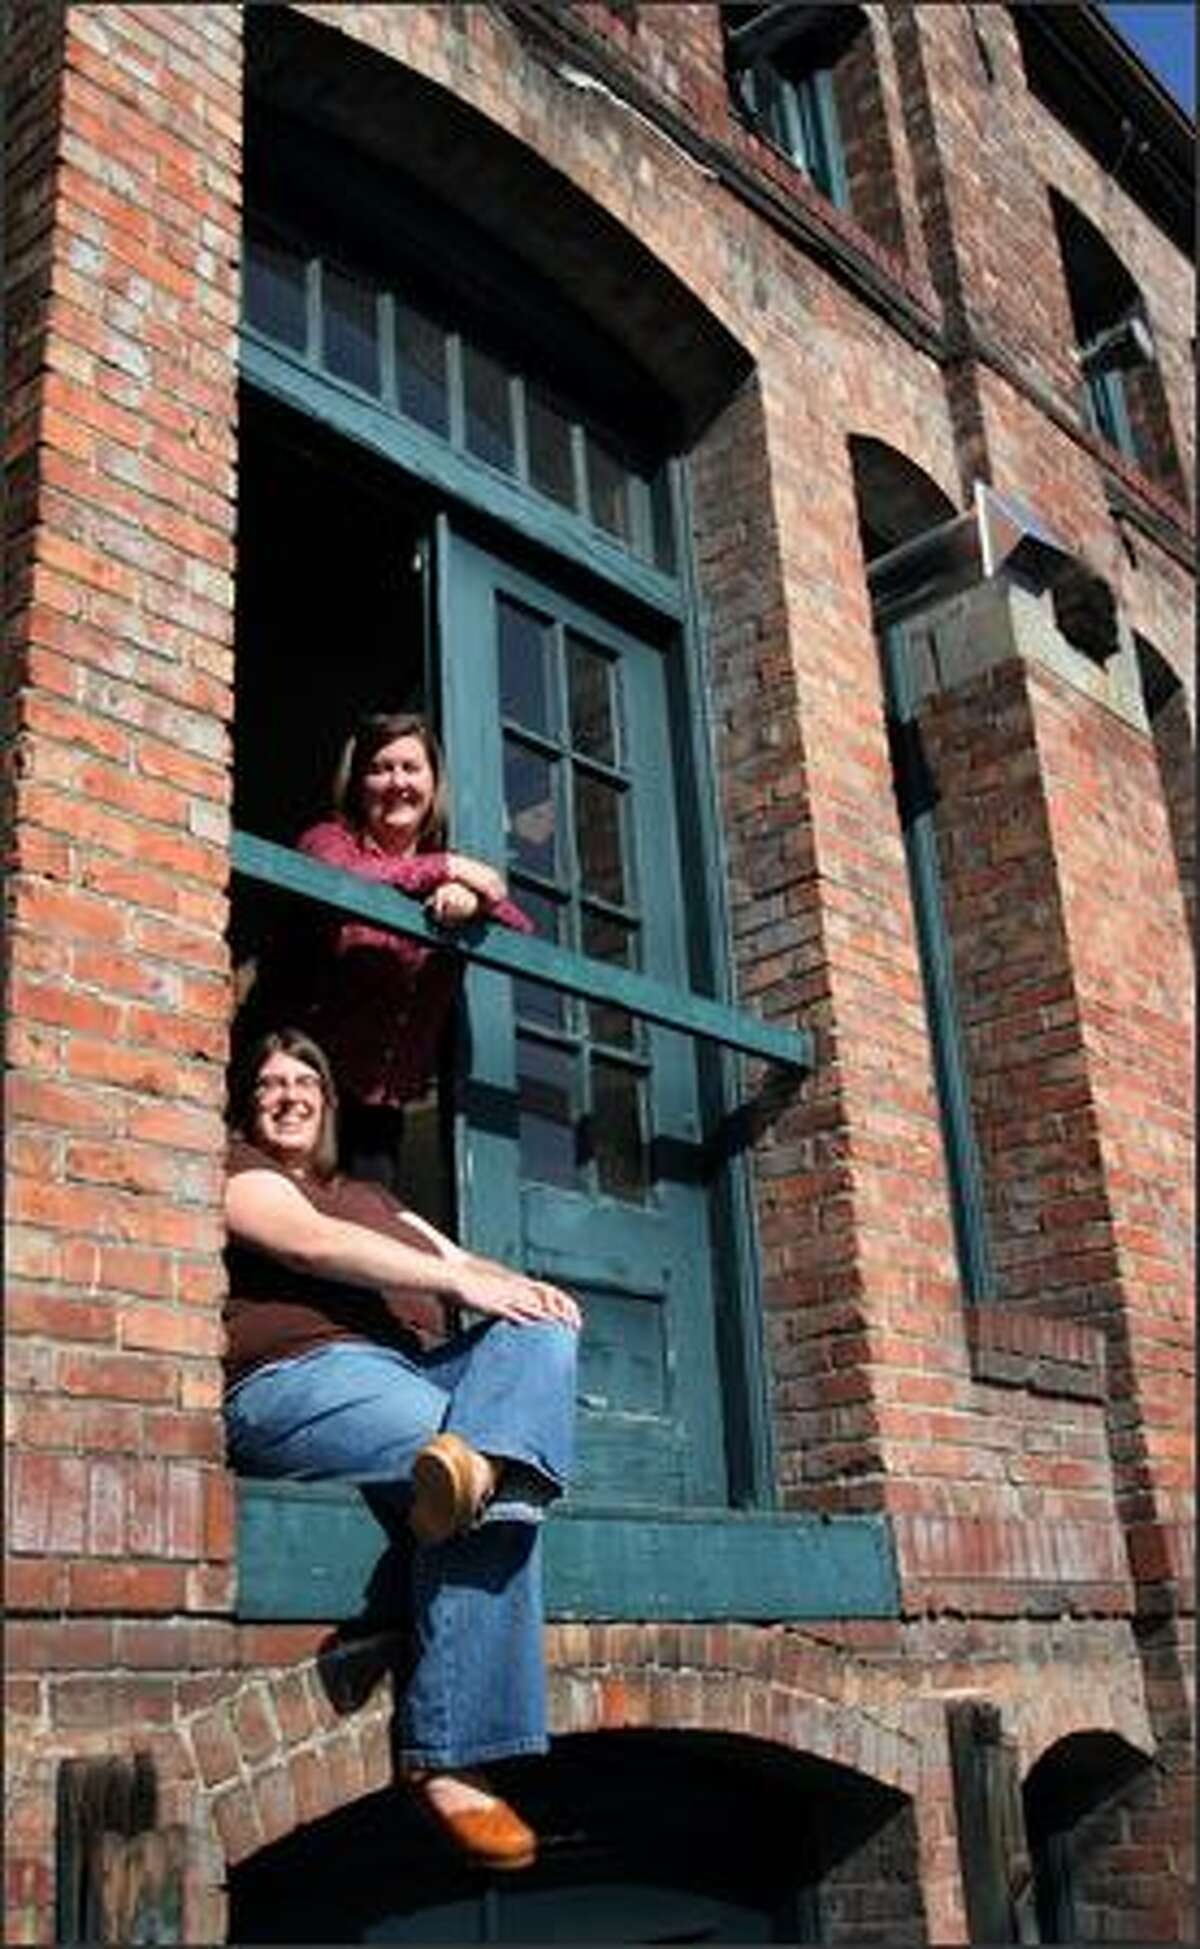 Sacha Davis, sitting, and Kathy Nyland are pictured at the Rainier Ice and Cold Storage Building, which contains artist studios and is considered a Georgetown landmark.